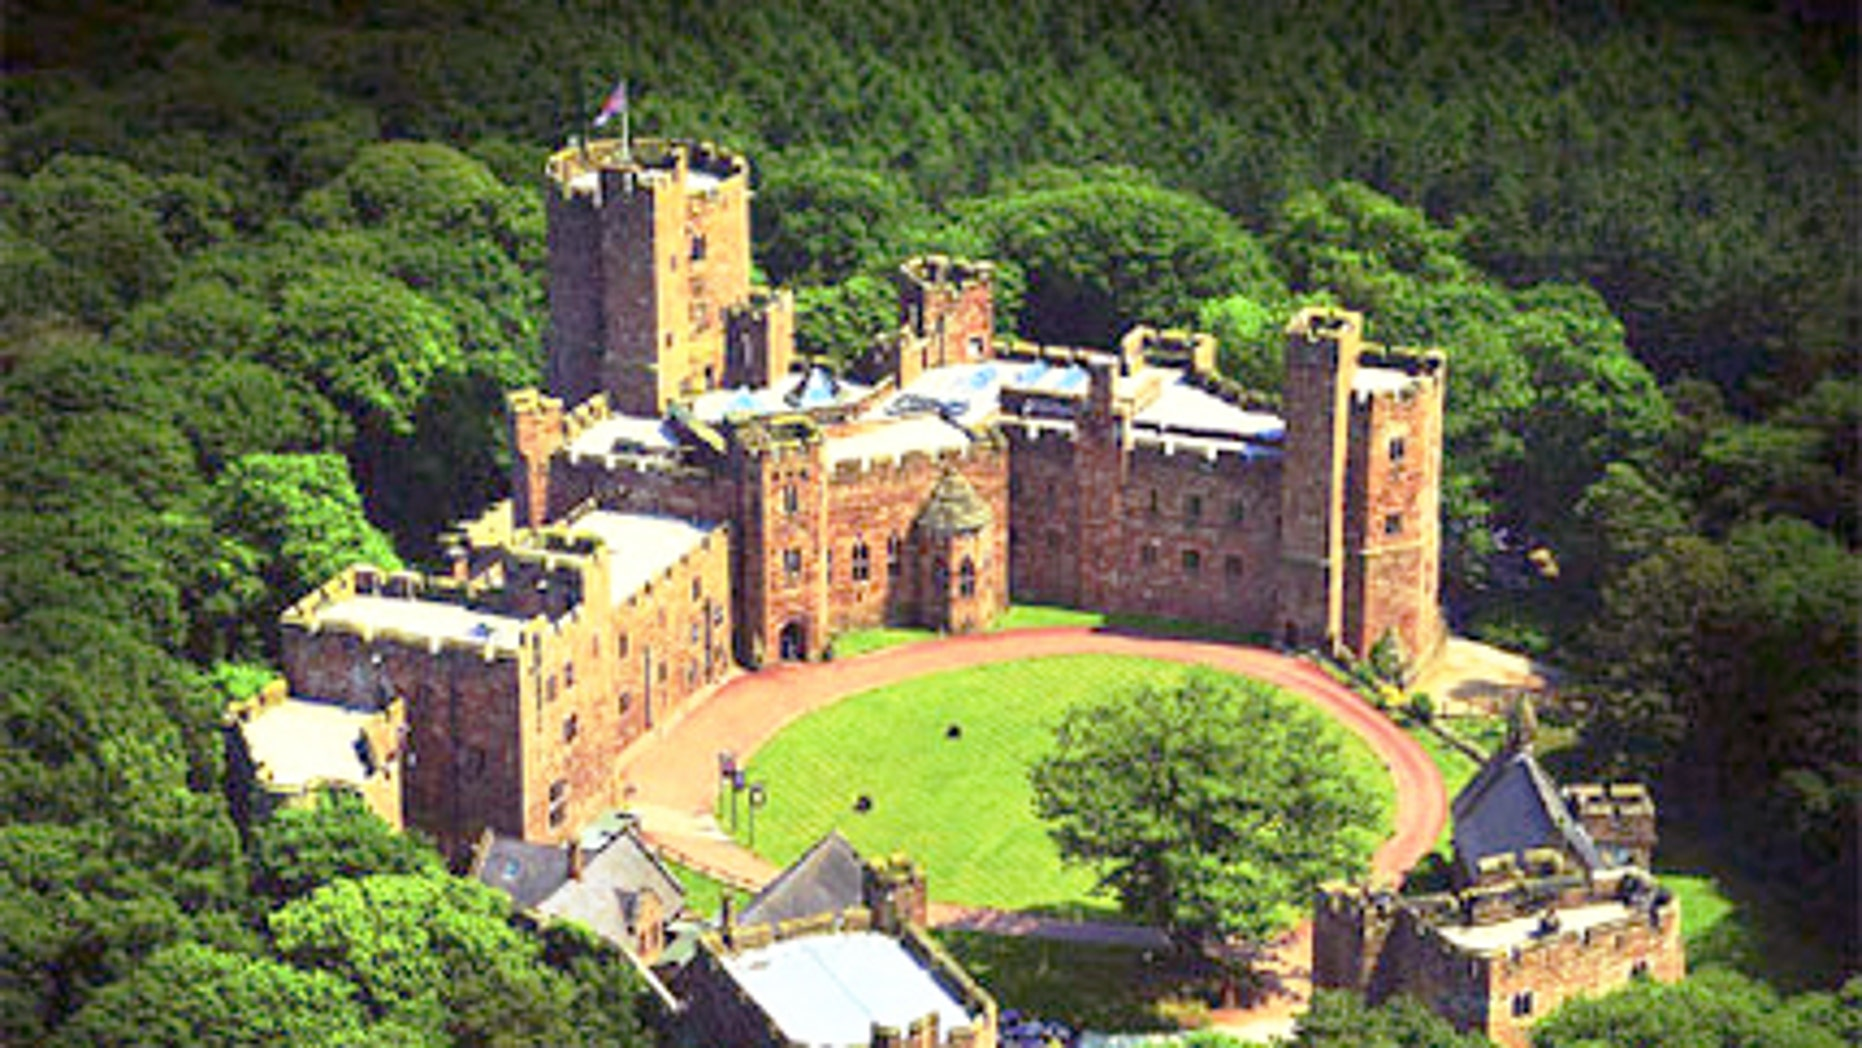 Peckforton Castle is a manor house built in the style of a medieval castle.